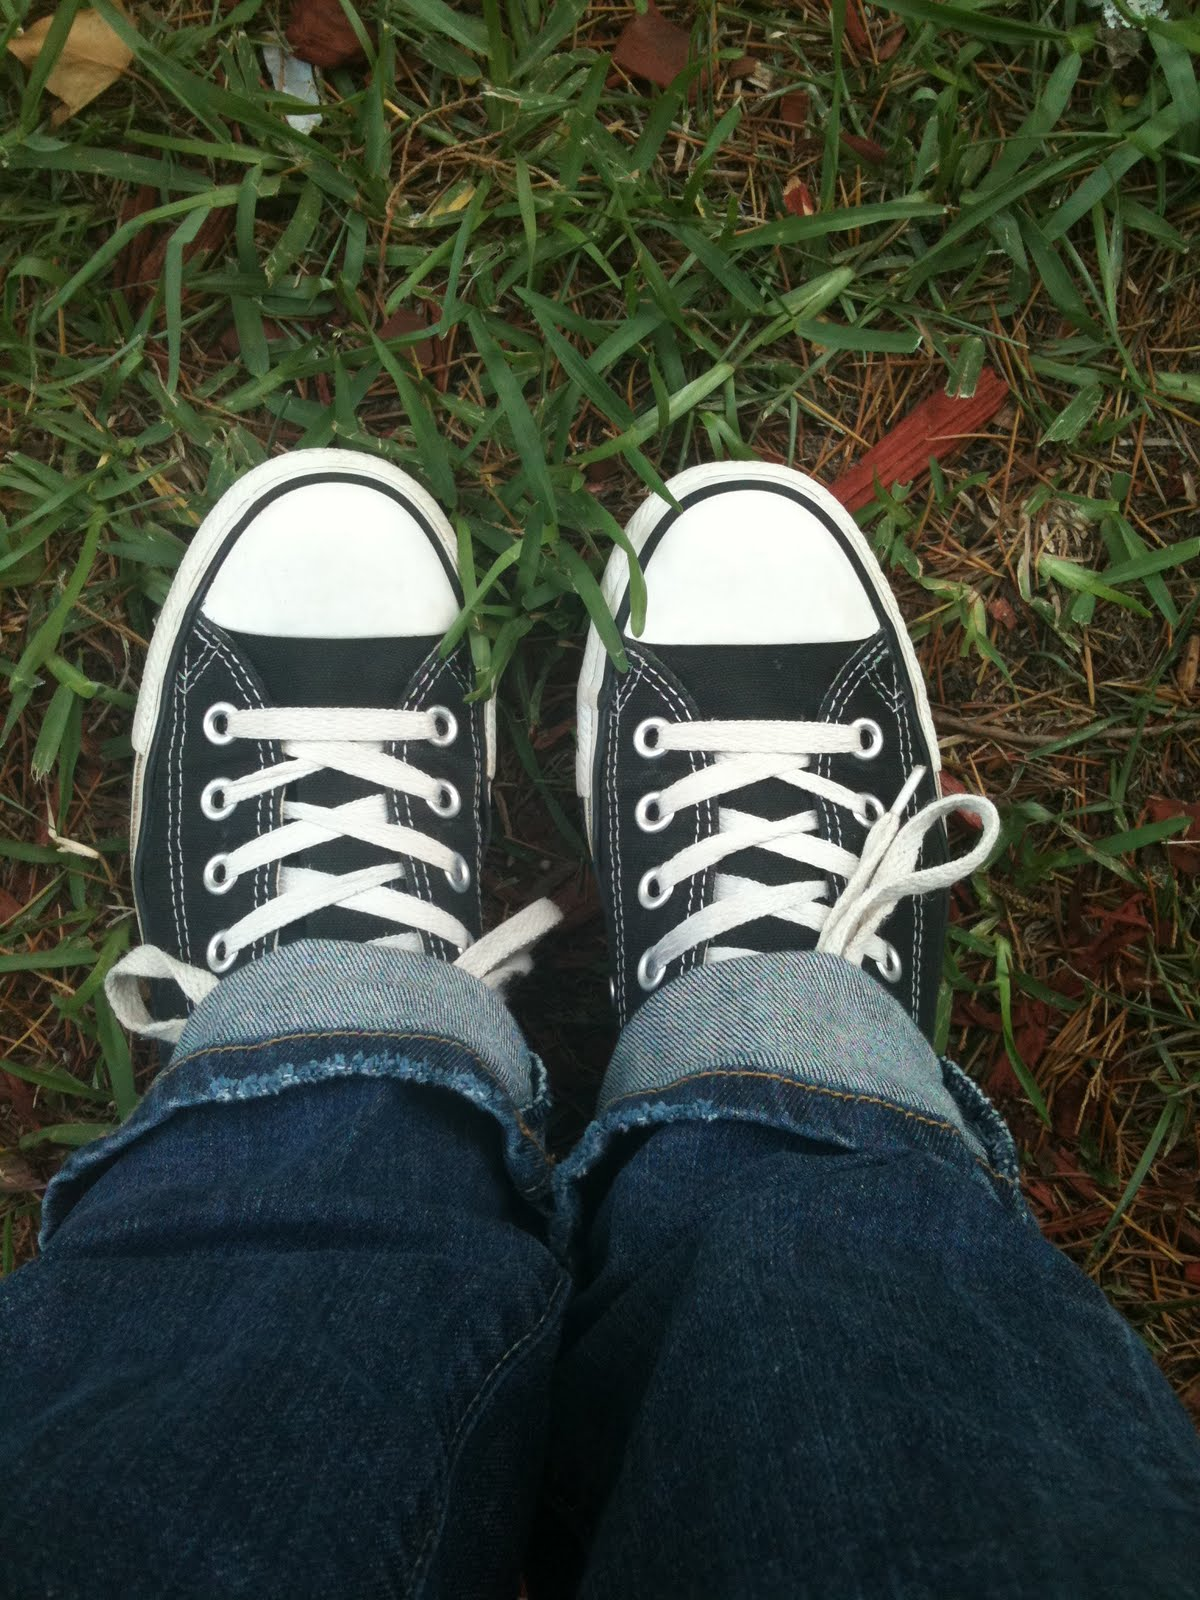 Charlotte's Attic: My Shoe Obsession: Converse Style